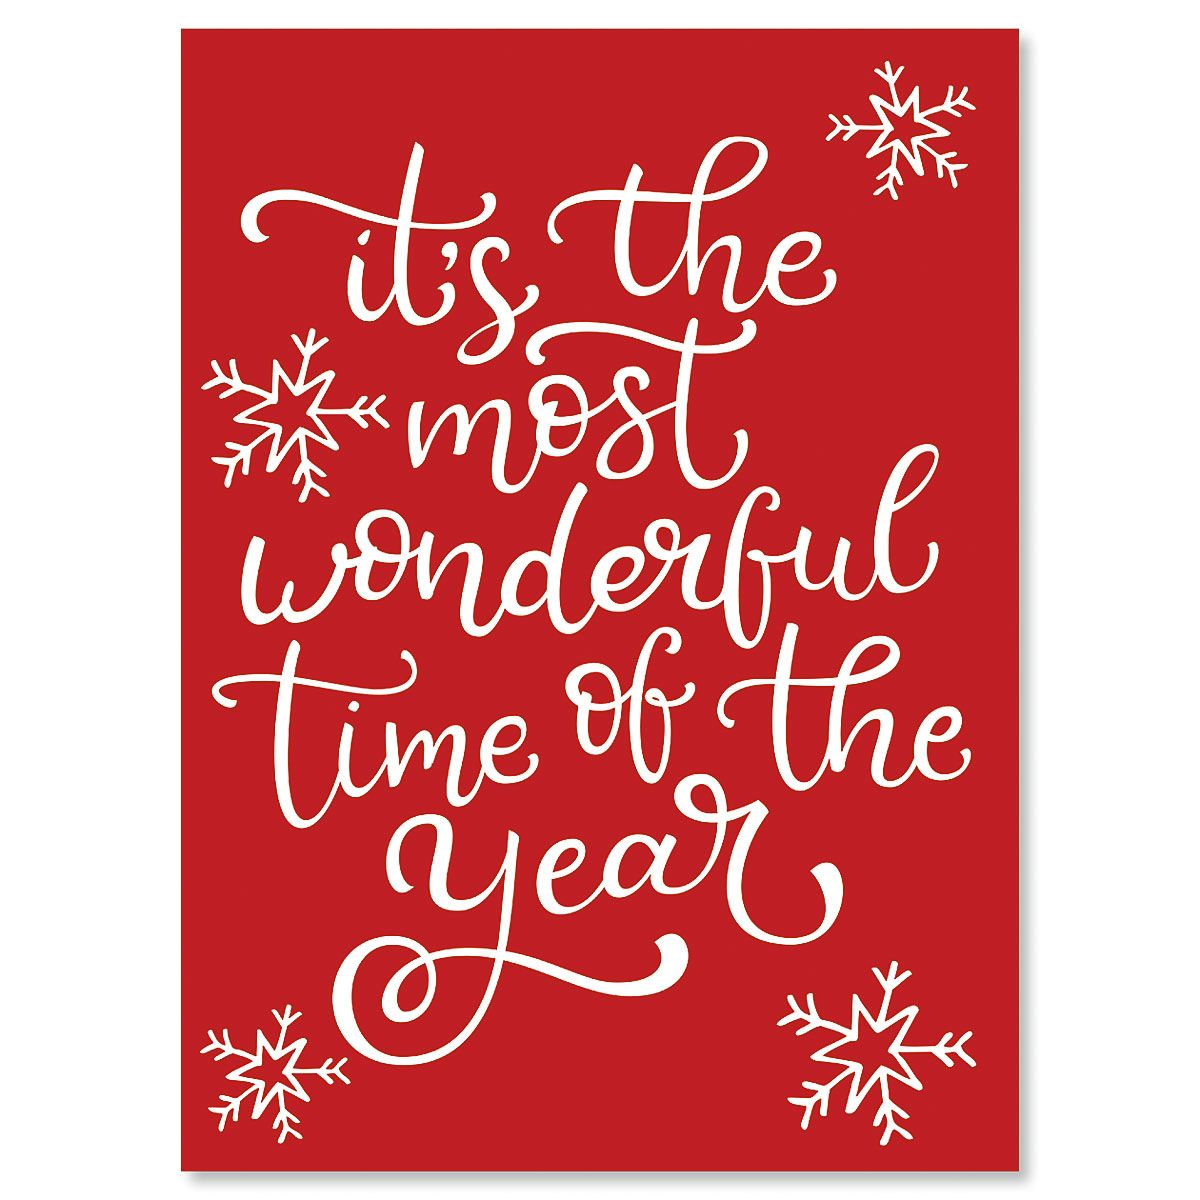 Most Wonderful Nonpersonalized Christmas Cards - Set of 18